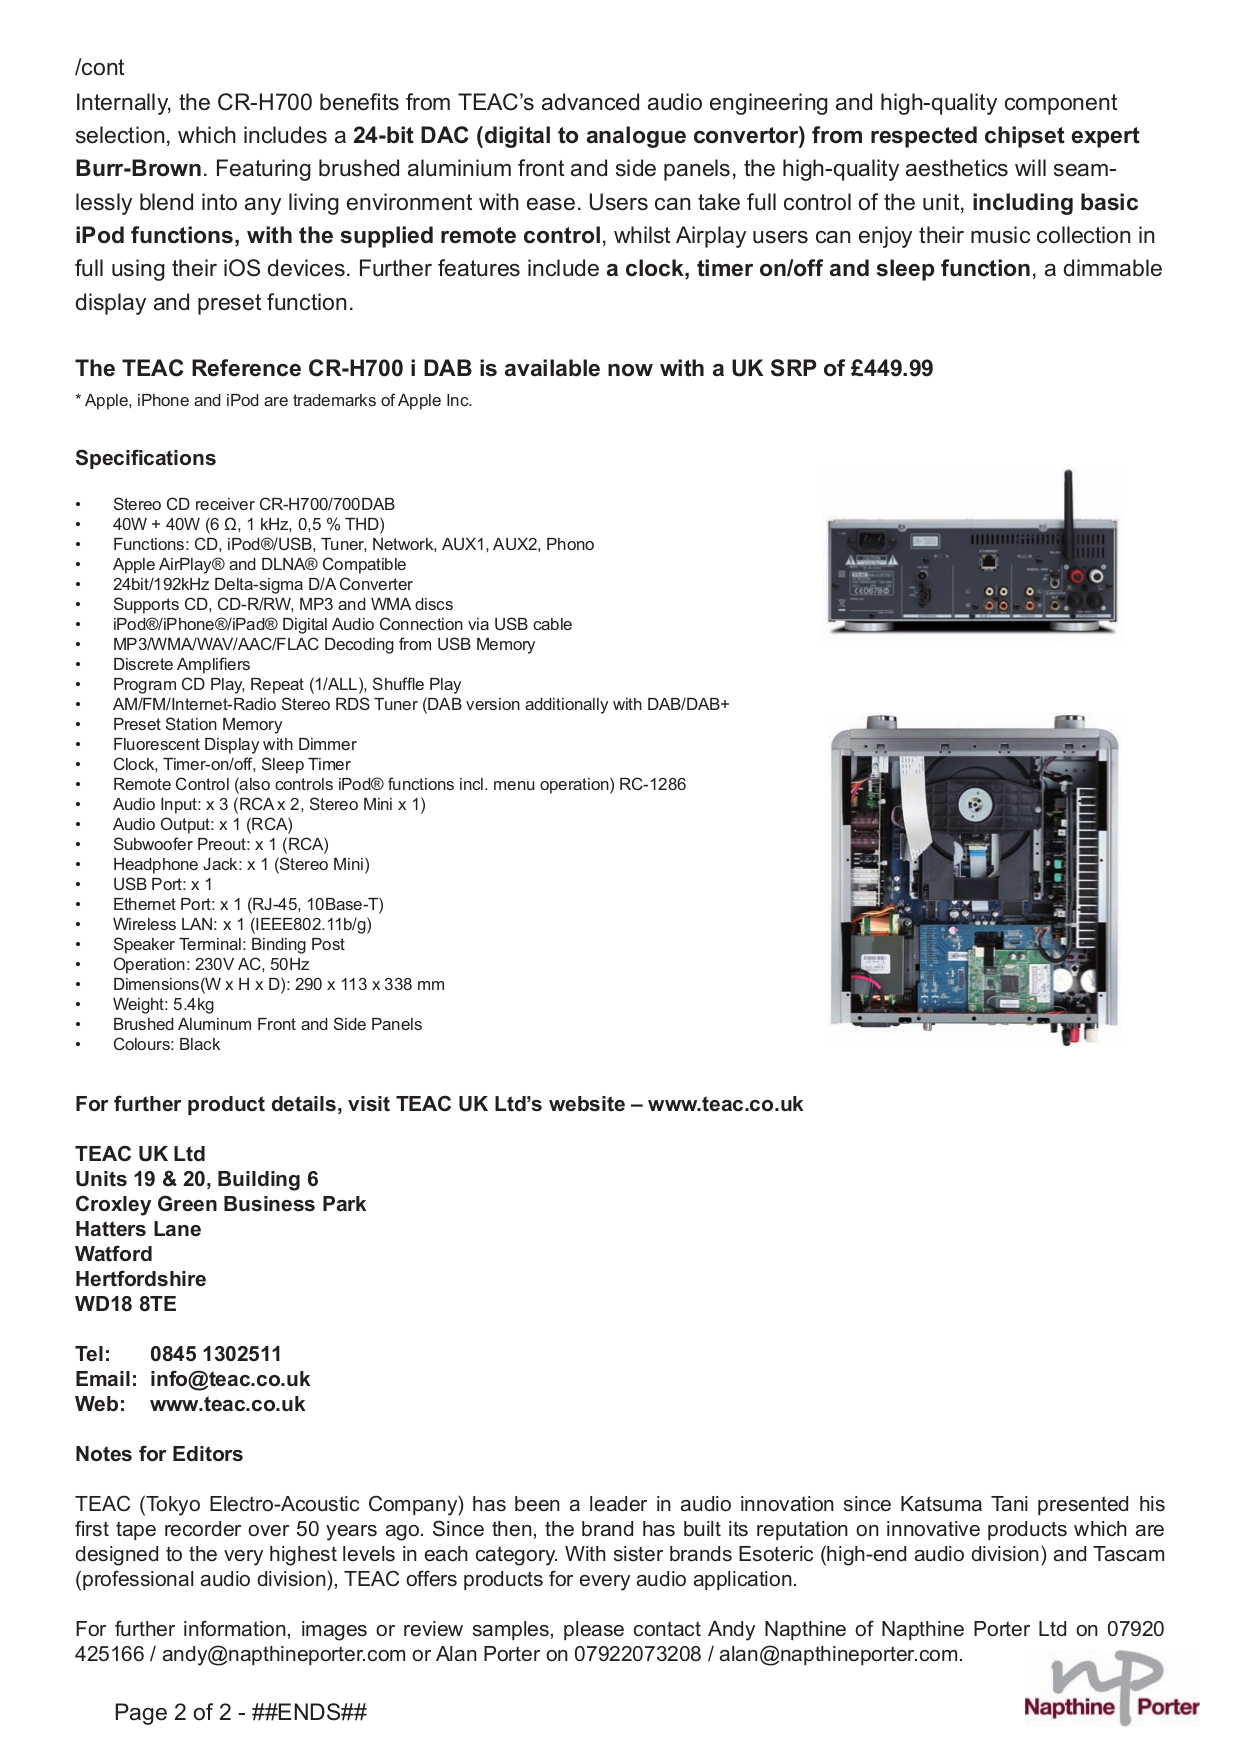 PDF manual for Teac Receiver CR-H500